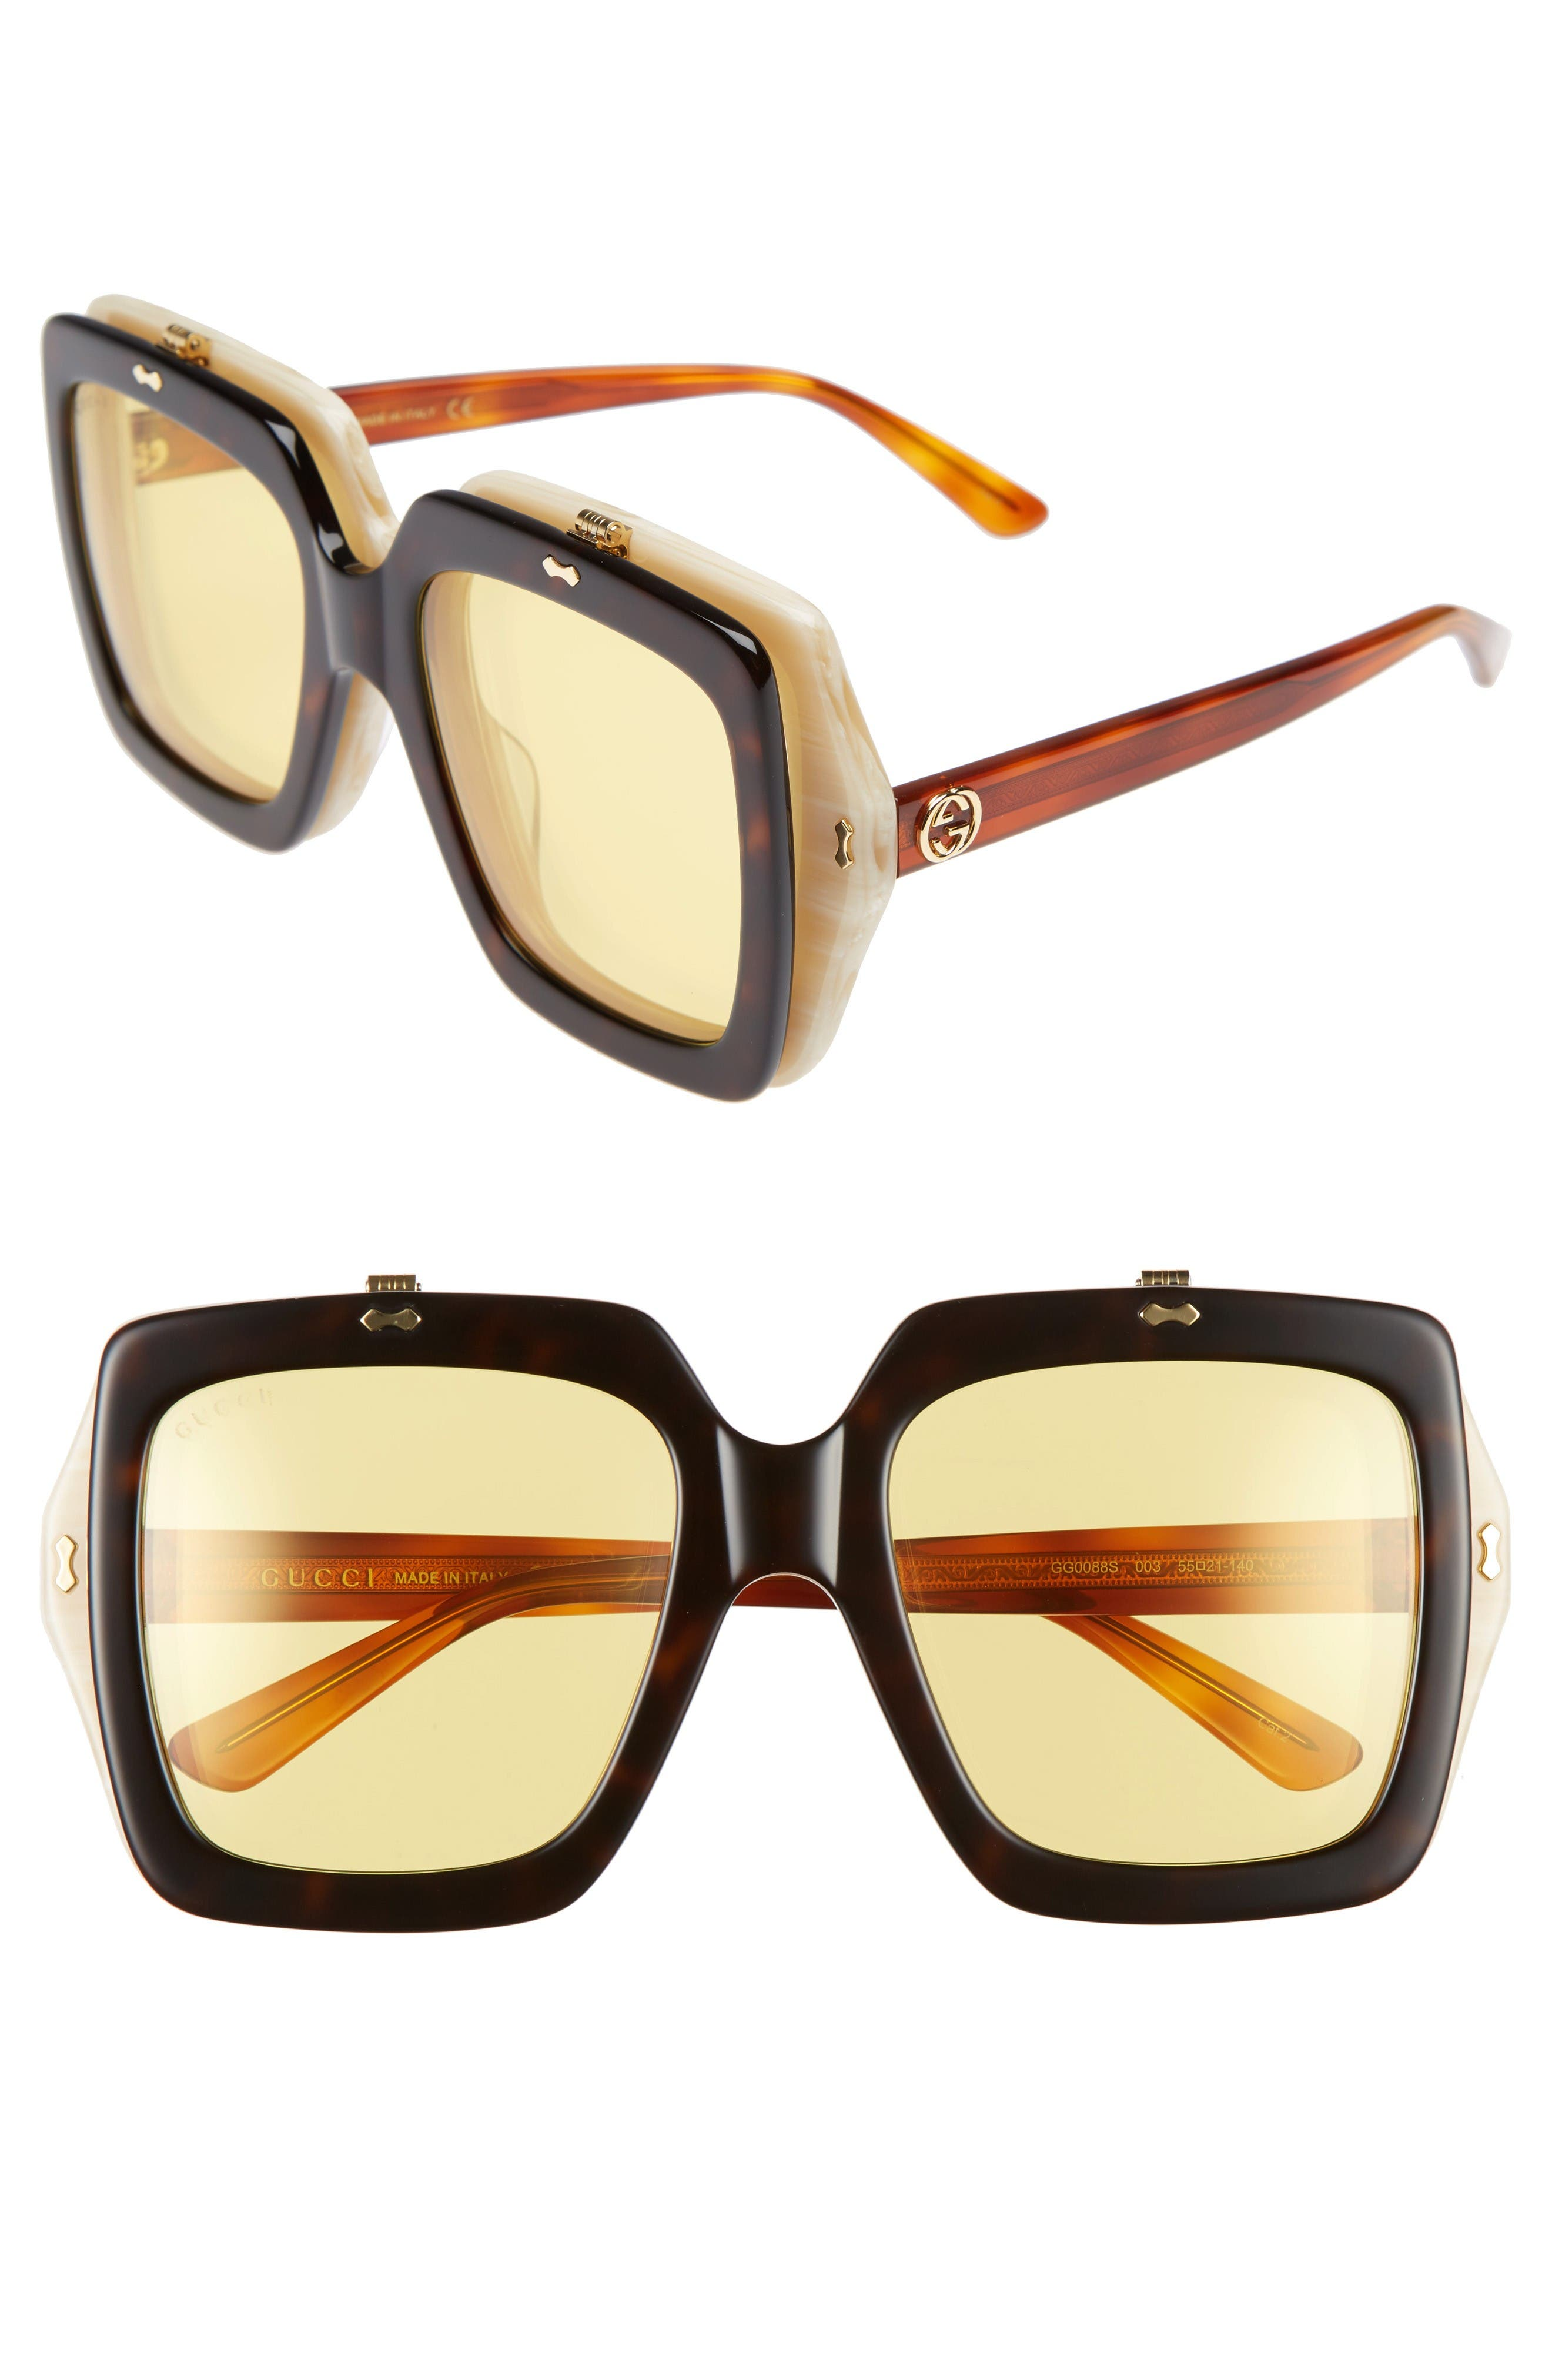 Alternate Image 1 Selected - Gucci 55mm Flip-Up Sunglasses